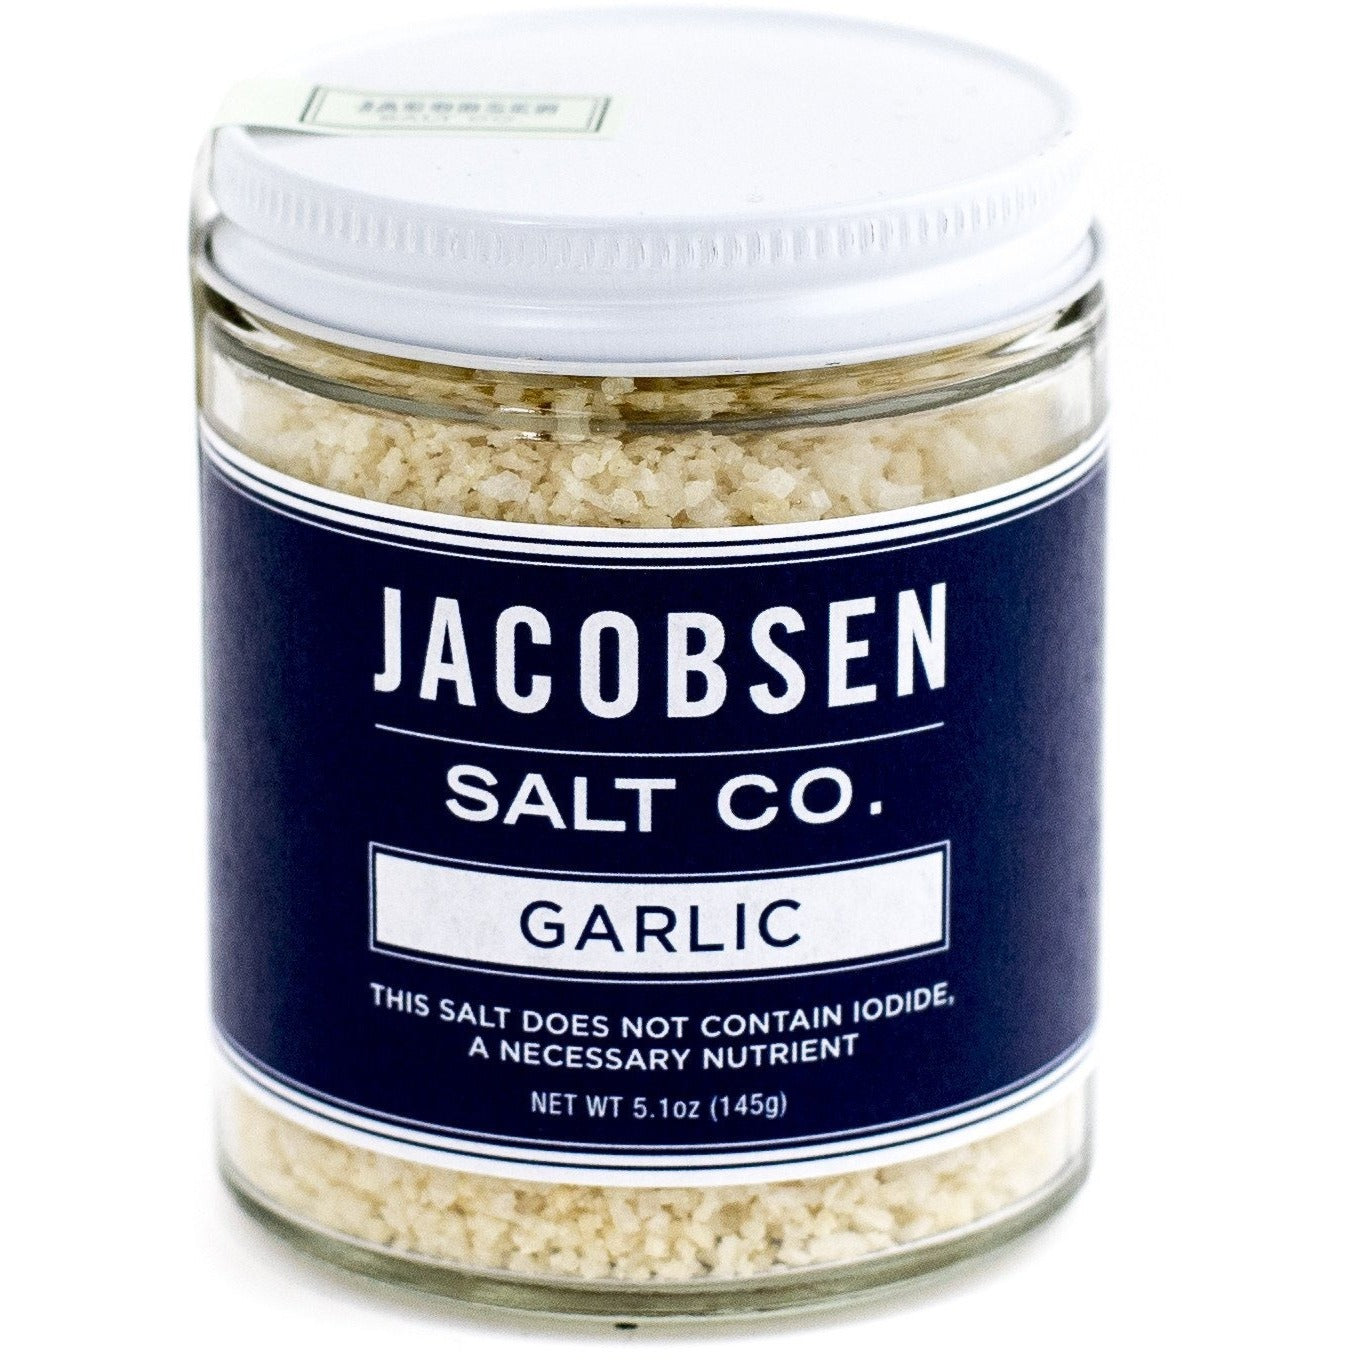 Jacobsen Garlic Salt